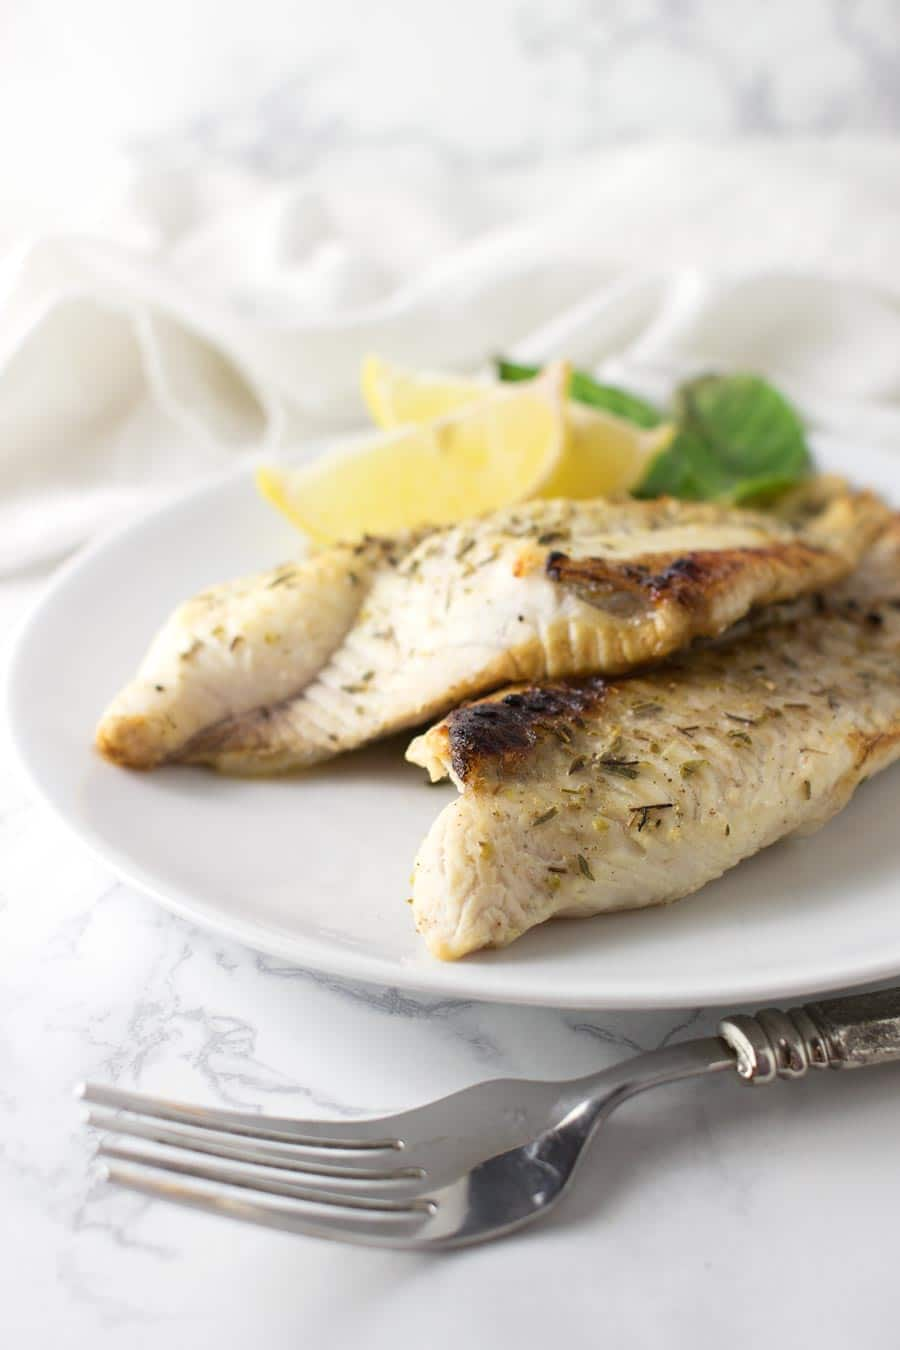 Garlic and Herb Catfish recipe from acleanplate.com #aip #paleo #autoimmuneprotocol